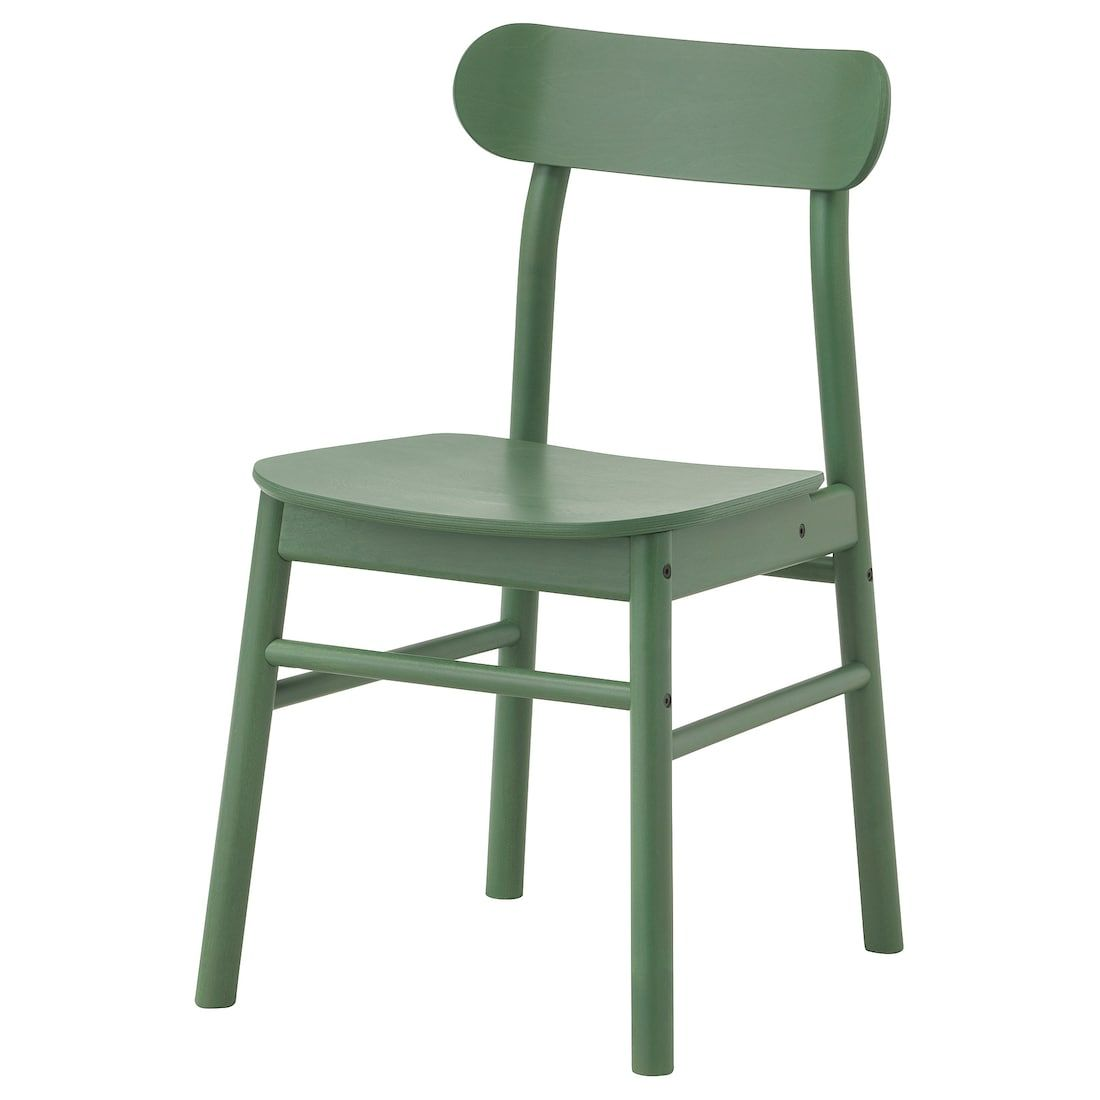 Ikea Ronninge Green Chair In 2020 Dining Chairs Chair Ikea Chair